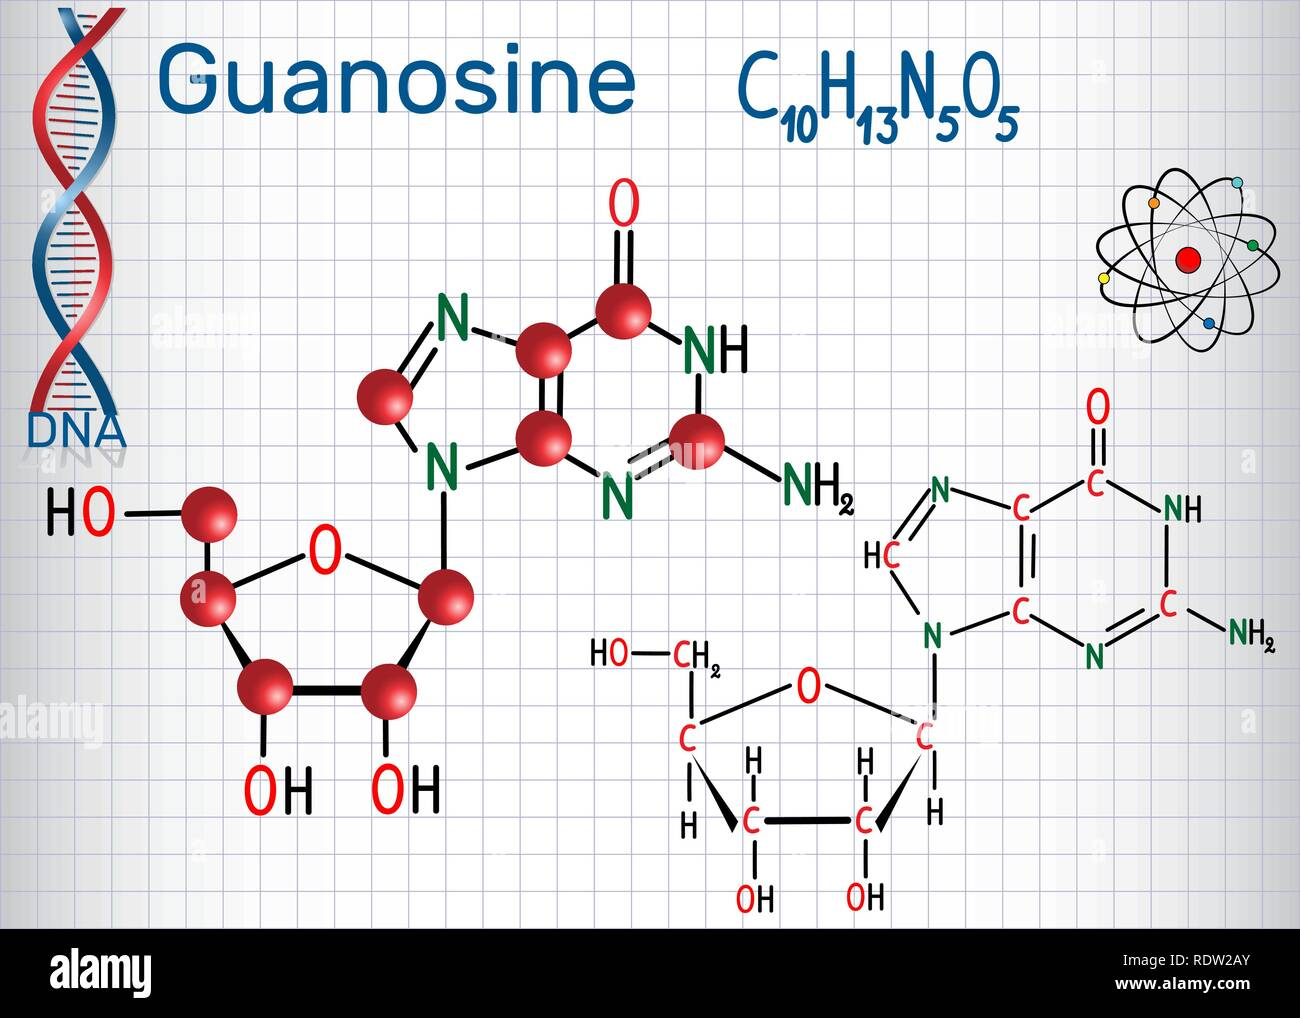 Guanosine - purine nucleoside molecule, is important part of GMP, GDP, cGMP , GTP, RNA, DNA. Structural chemical formula and molecule model. Sheet of  - Stock Image